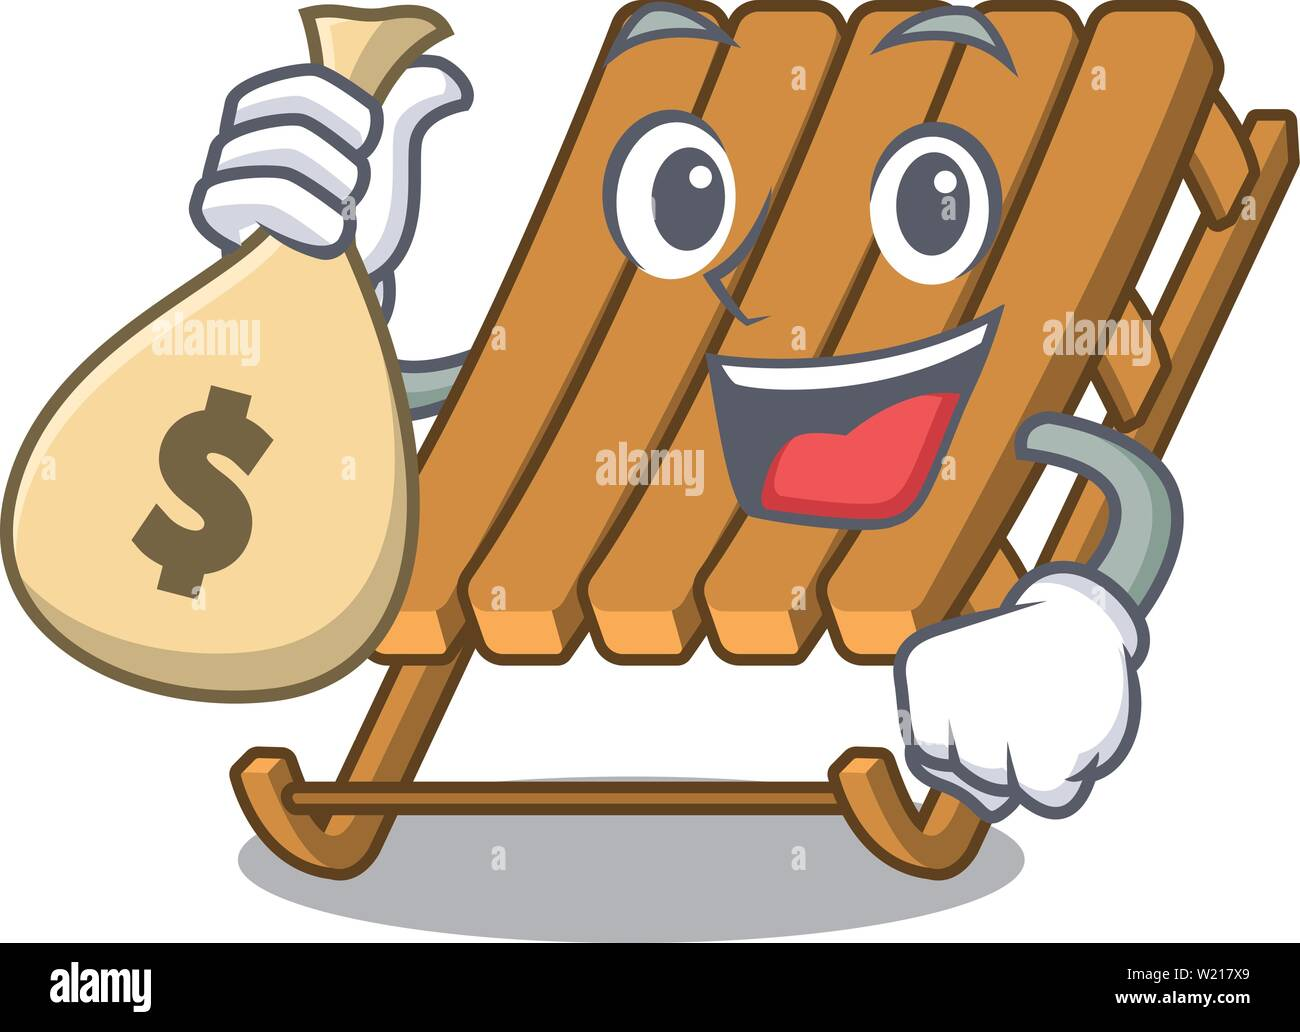 With money bag ice sled in the mascot shape - Stock Image